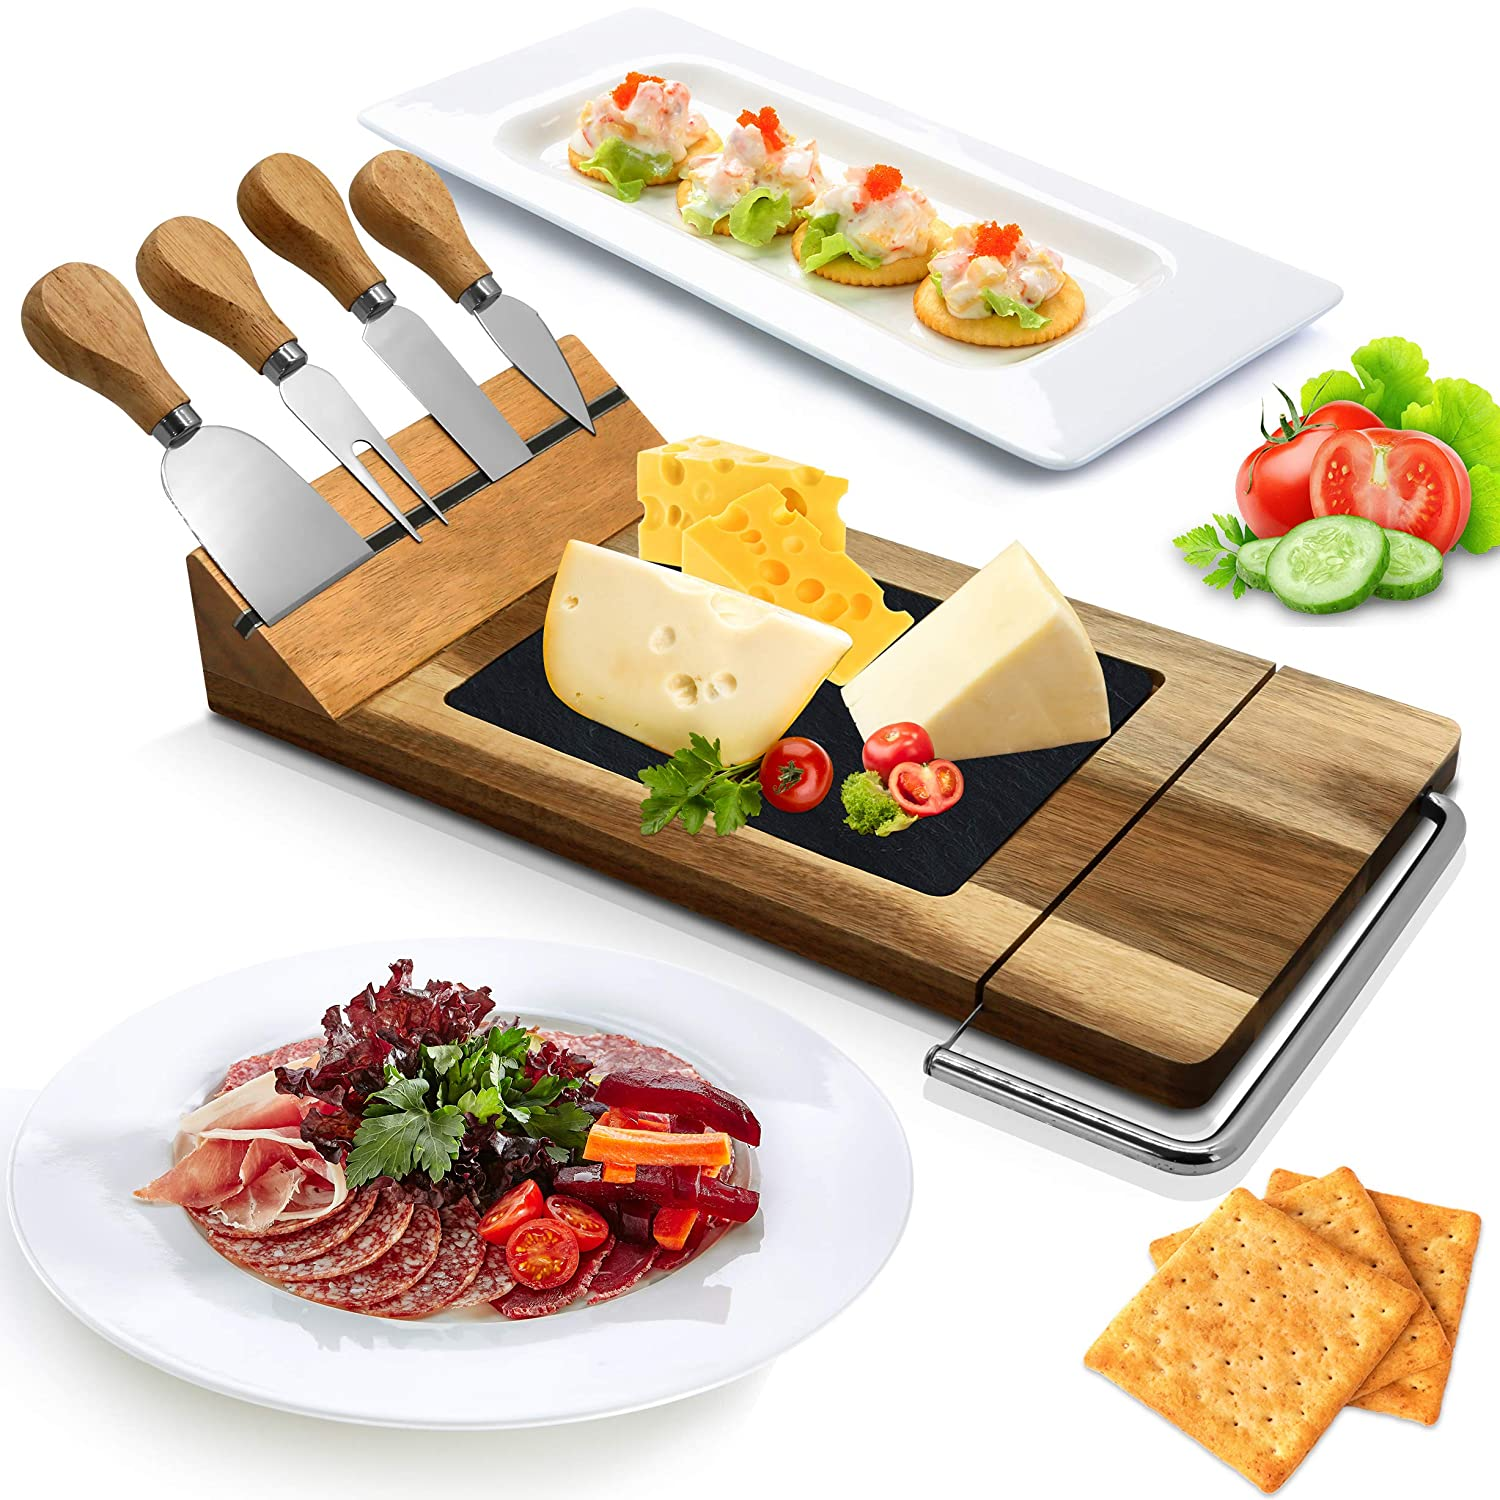 Bamboo Cheese Board Serving Set - Modern Rectangle Wood Cheese Platter Tray w/ Stone Slab Plate, Stainless Steel Knives, Magnet Holder, Slicer Blade for Cutting Food, Fruit, Meat - NutriChef PKCZBD50